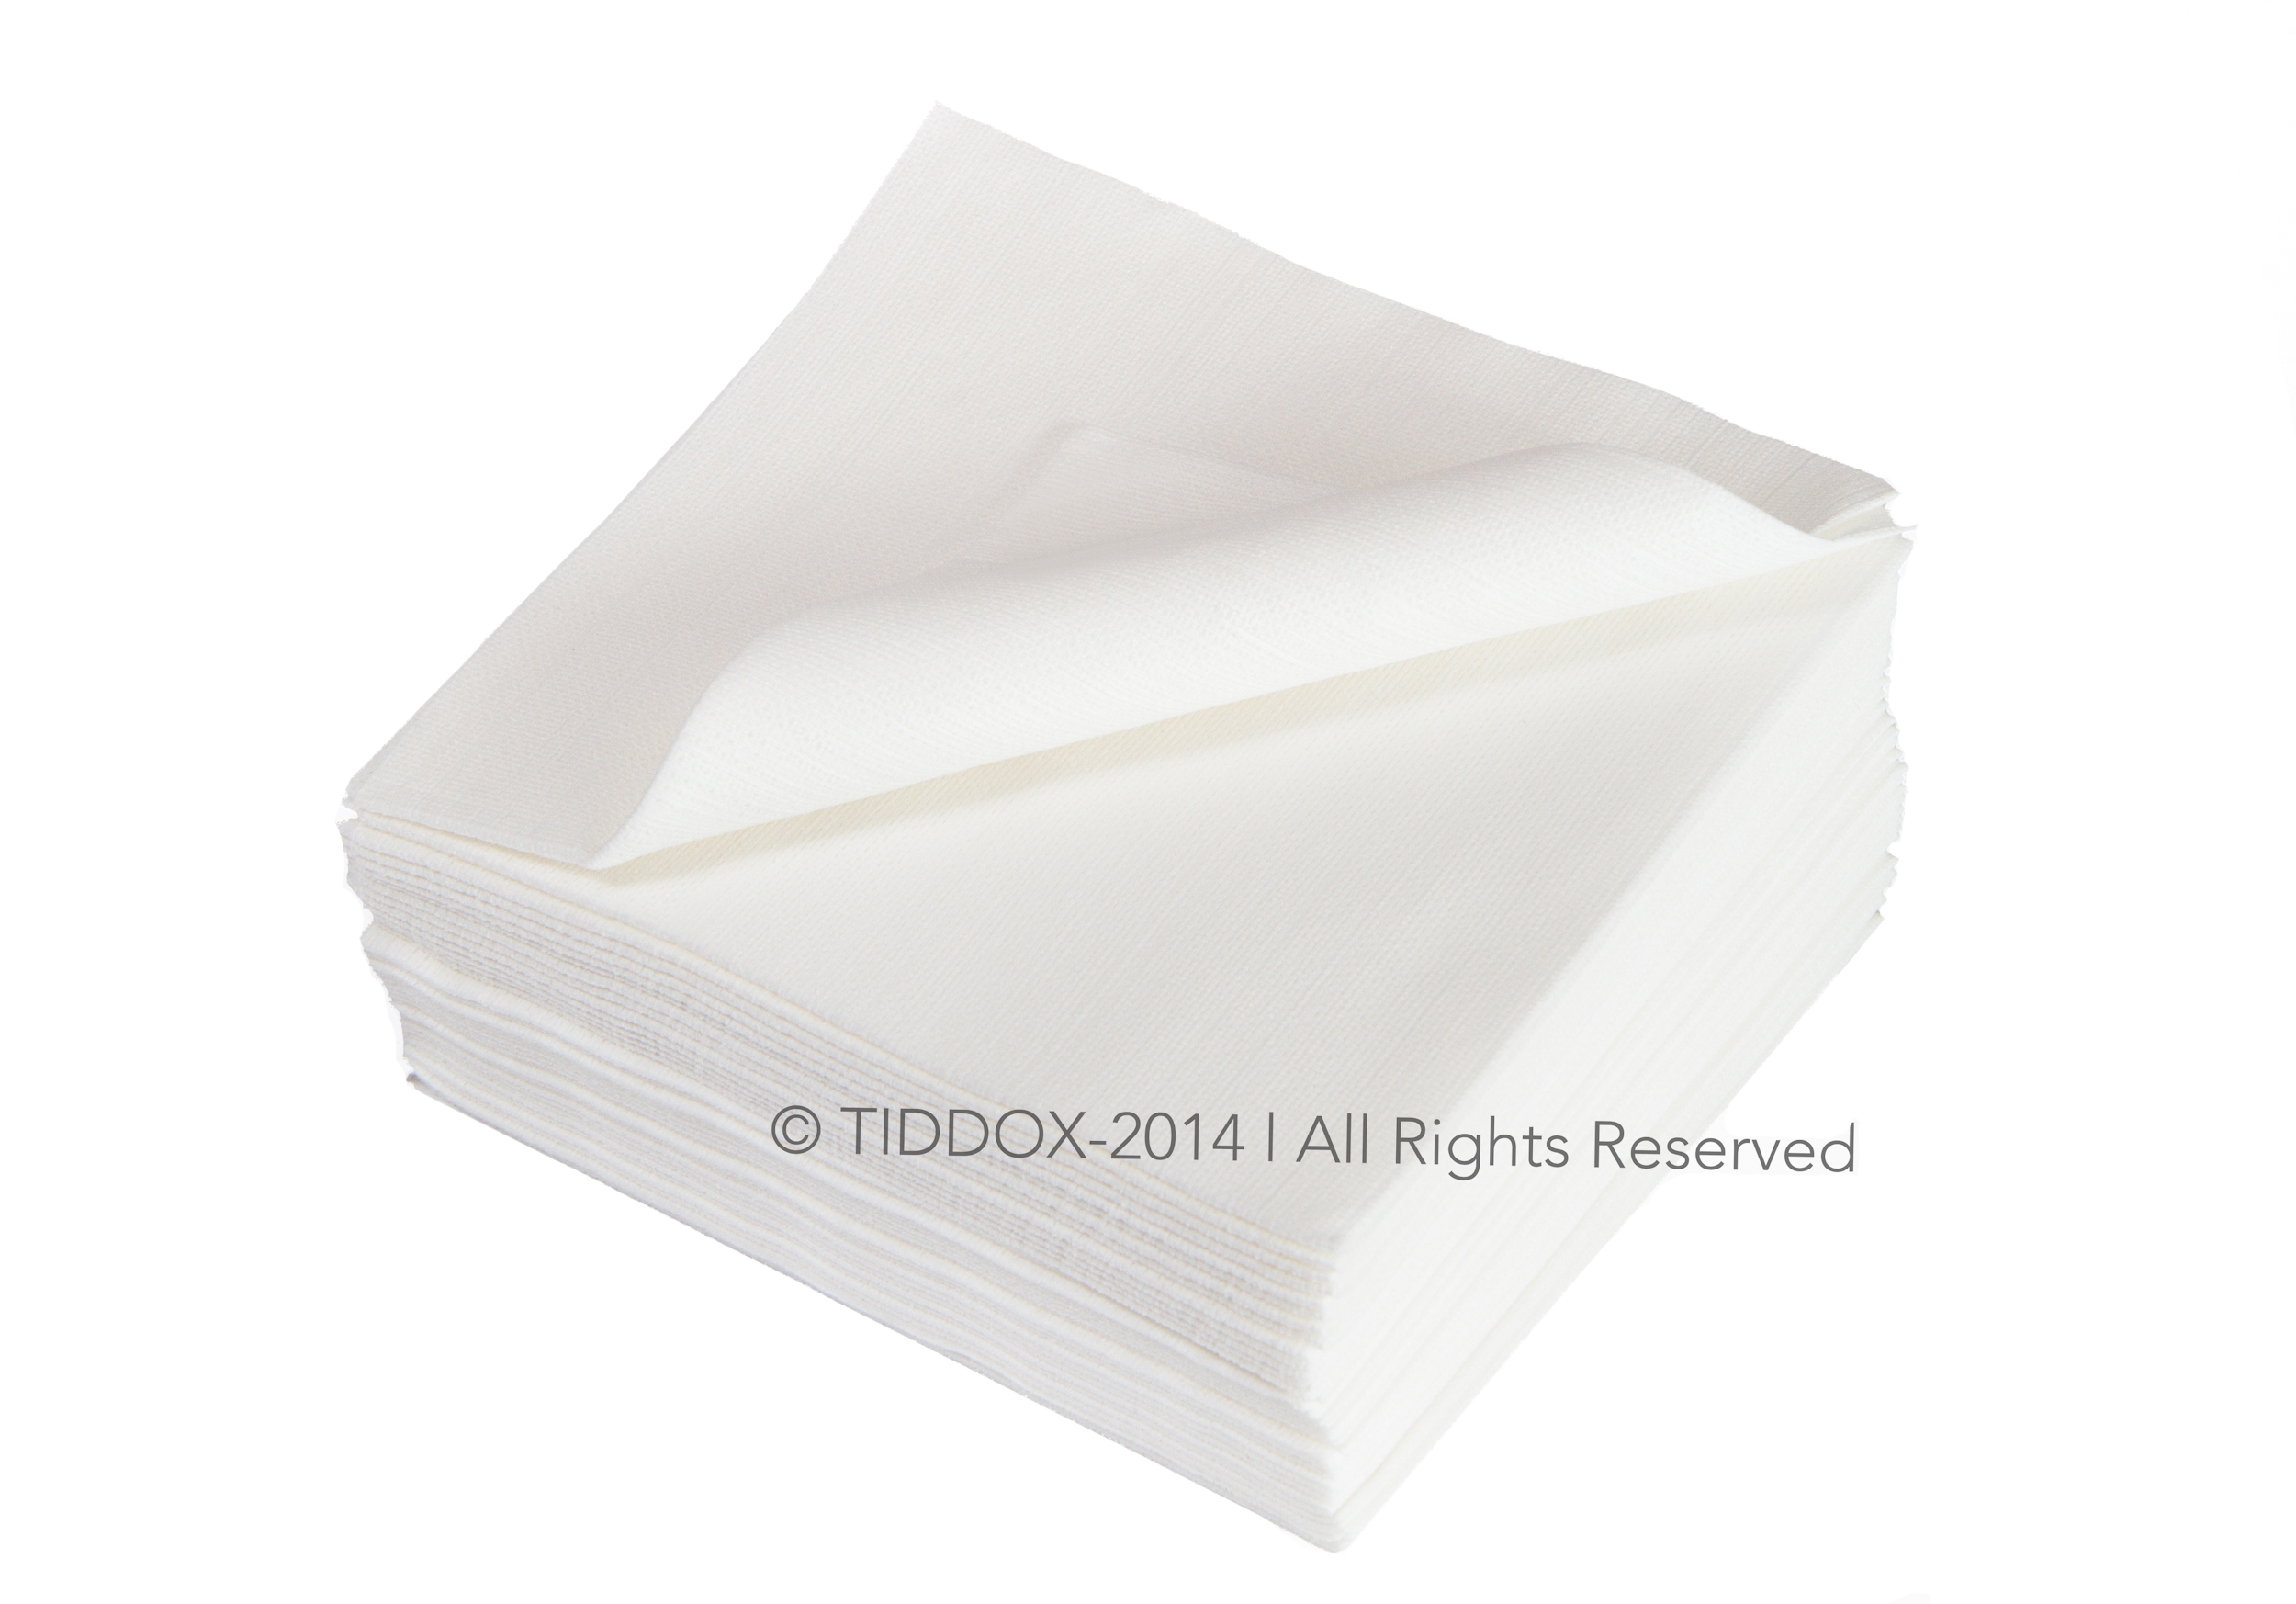 INDUSTRIAL SOLVENT RESISTANT WIPES